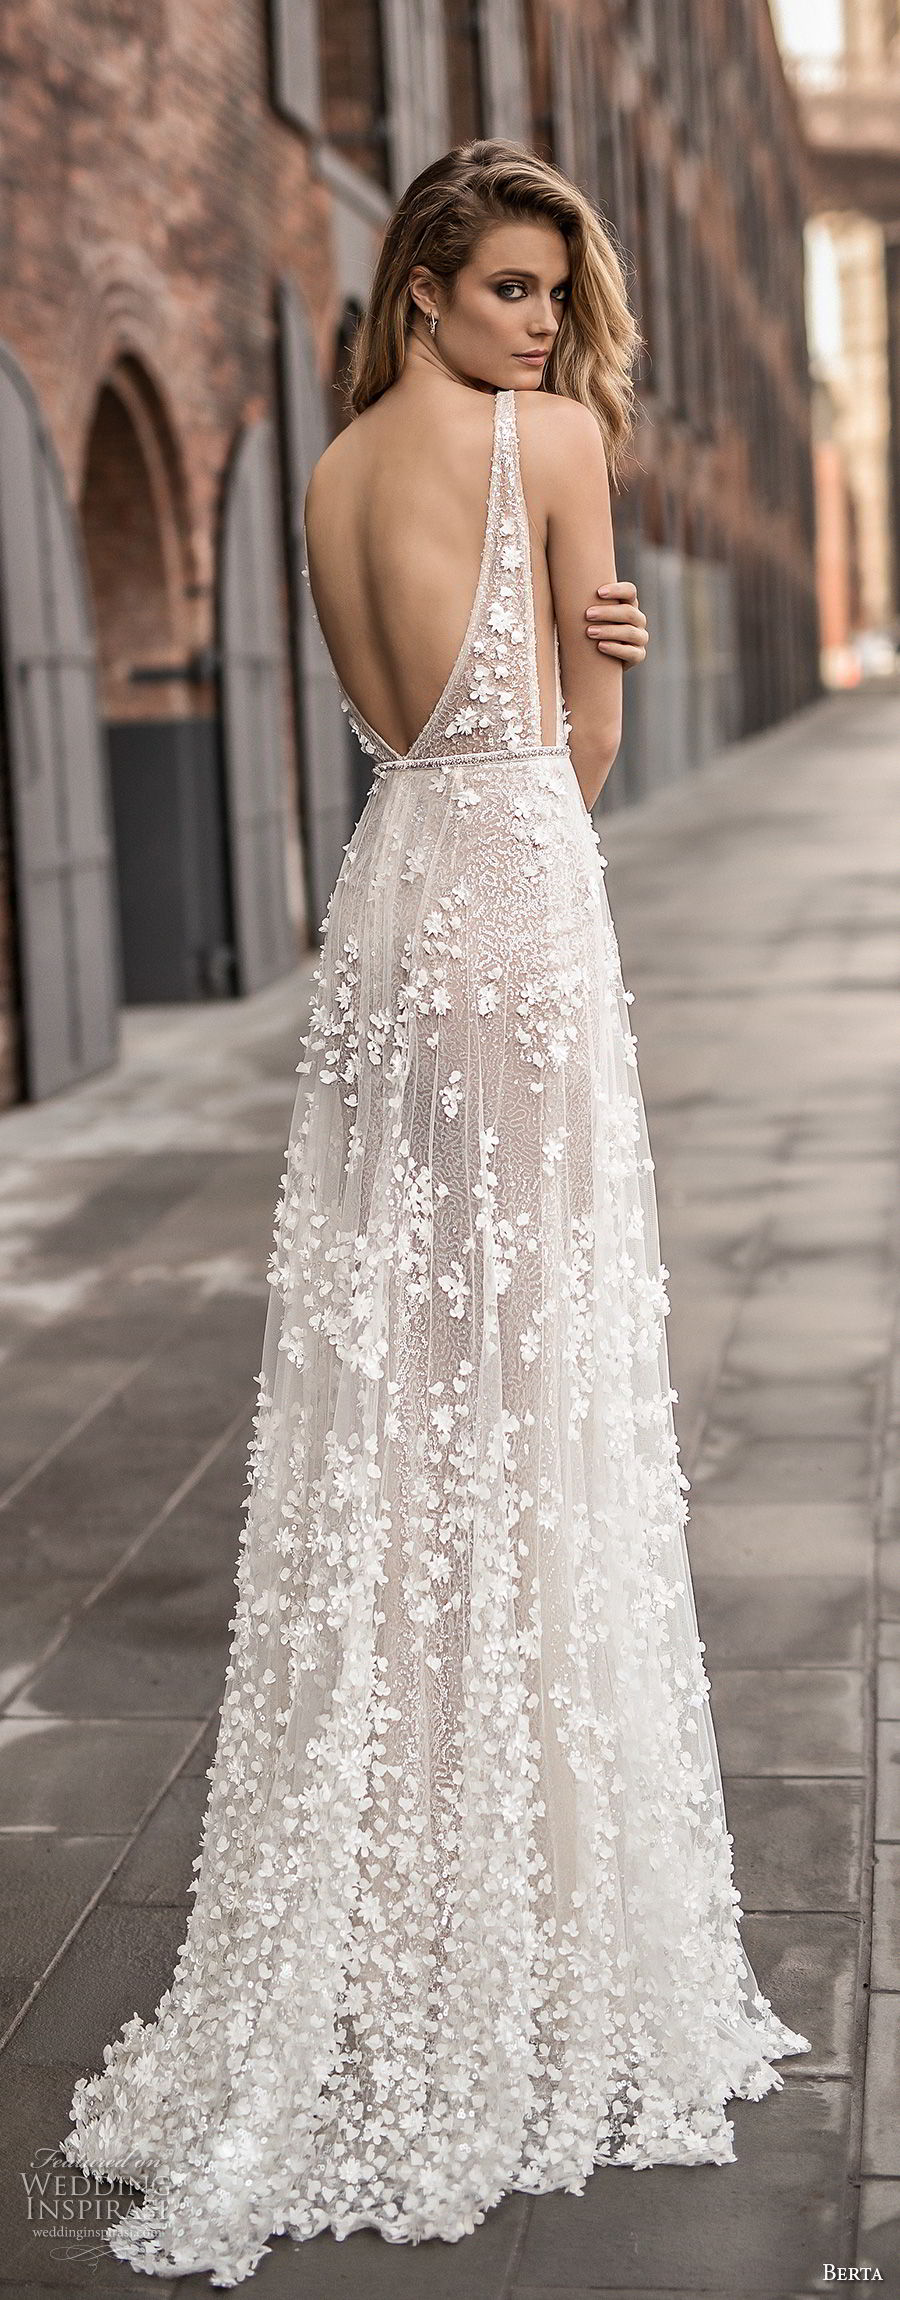 berta spring 2018 bridal sleeveless deep plunging v neck full embellishment sexy a line wedding dress open back sweep train (14) bv